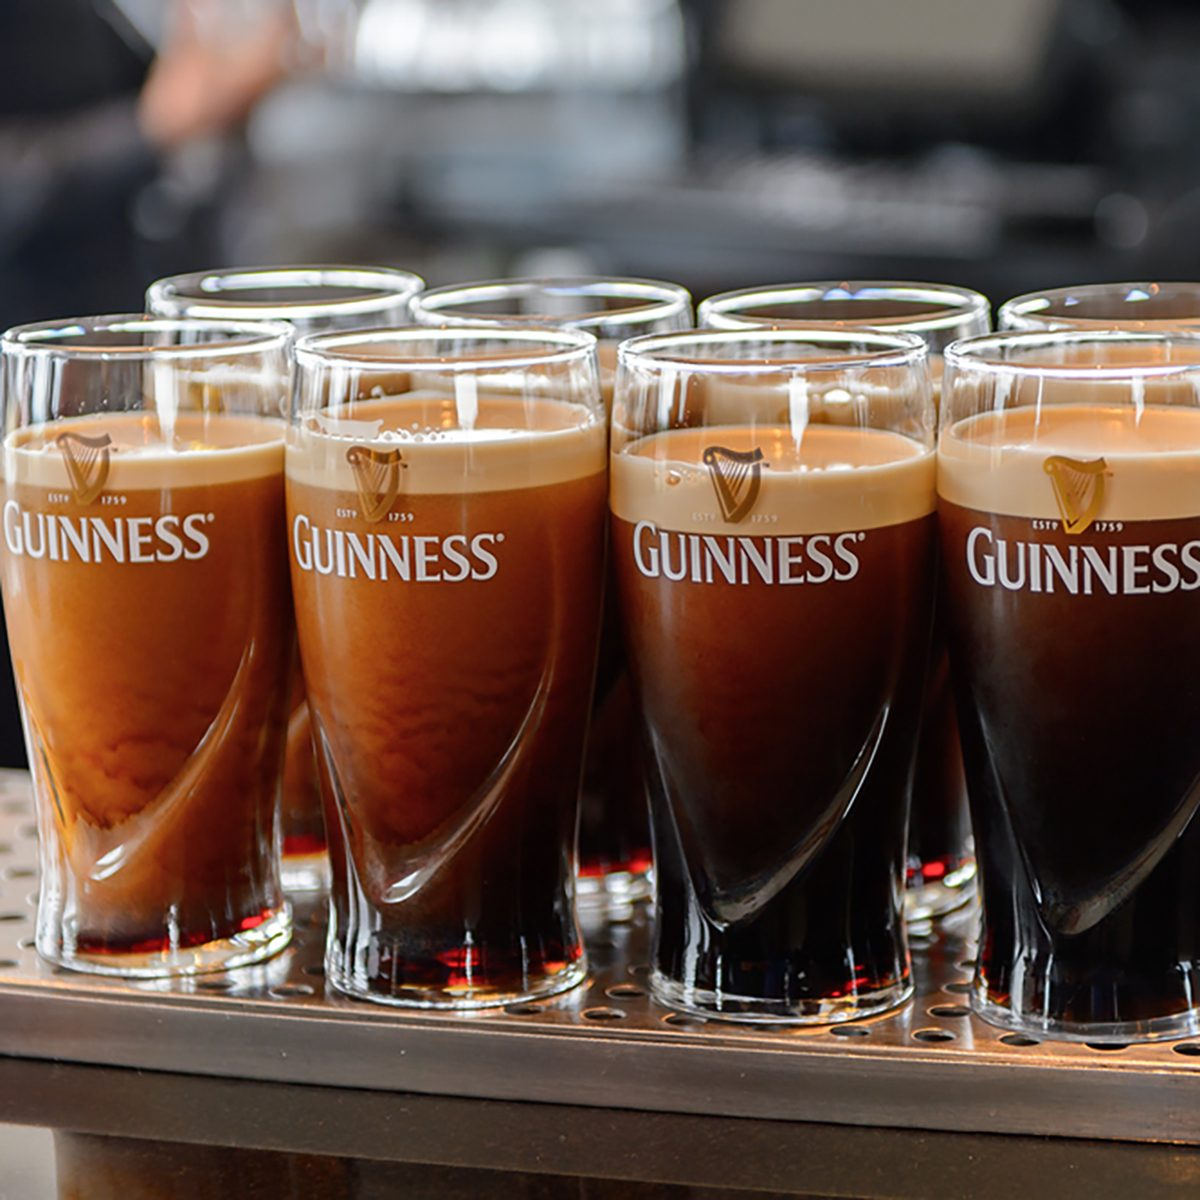 Pints of Guinness in the museum in Dublin. Guinness is an Irish dry stout produced by Diageo originated in the brewery of Arthur Guinness